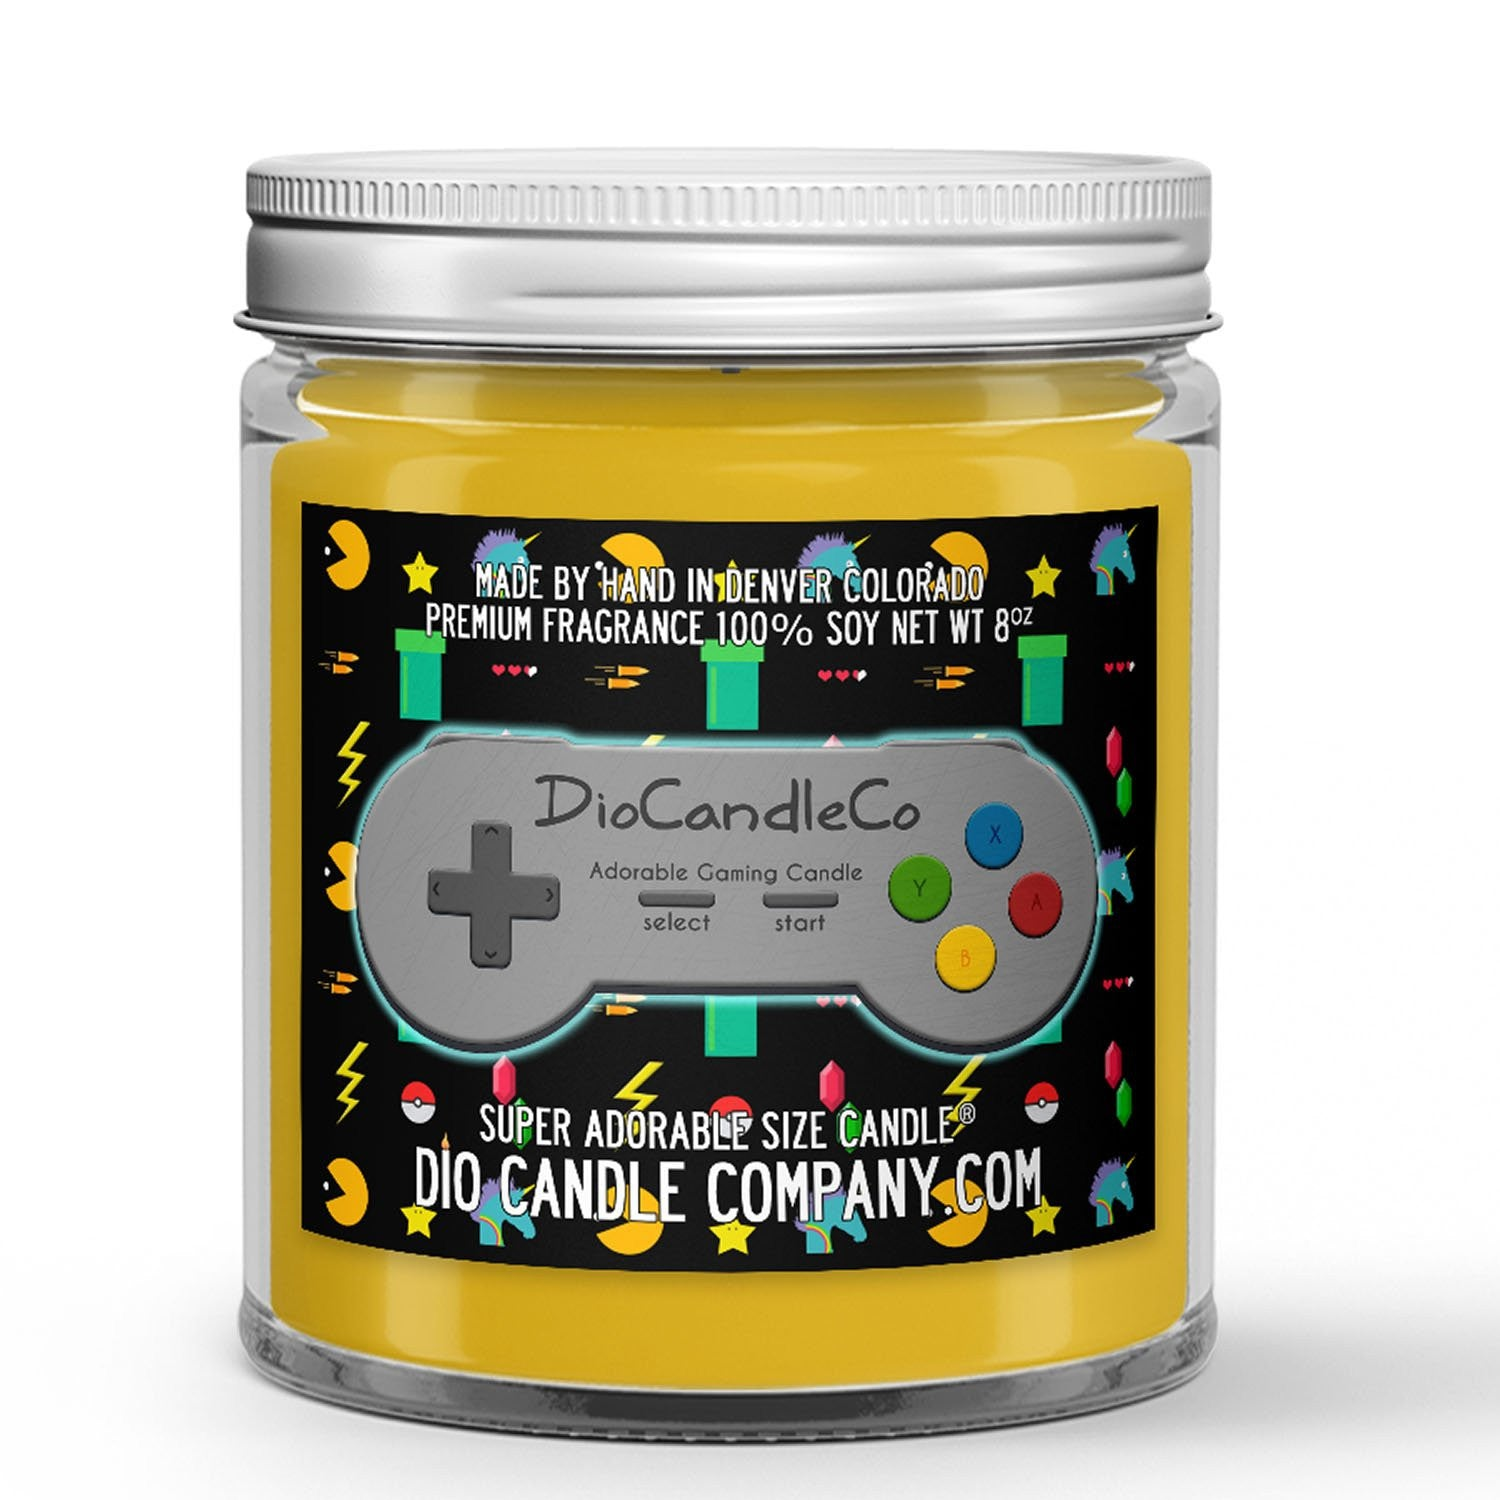 Personalized Gamer Tag Candle - Zesty Ginger-Ale - 8oz Super Adorable Size Candle® - Dio Candle Company